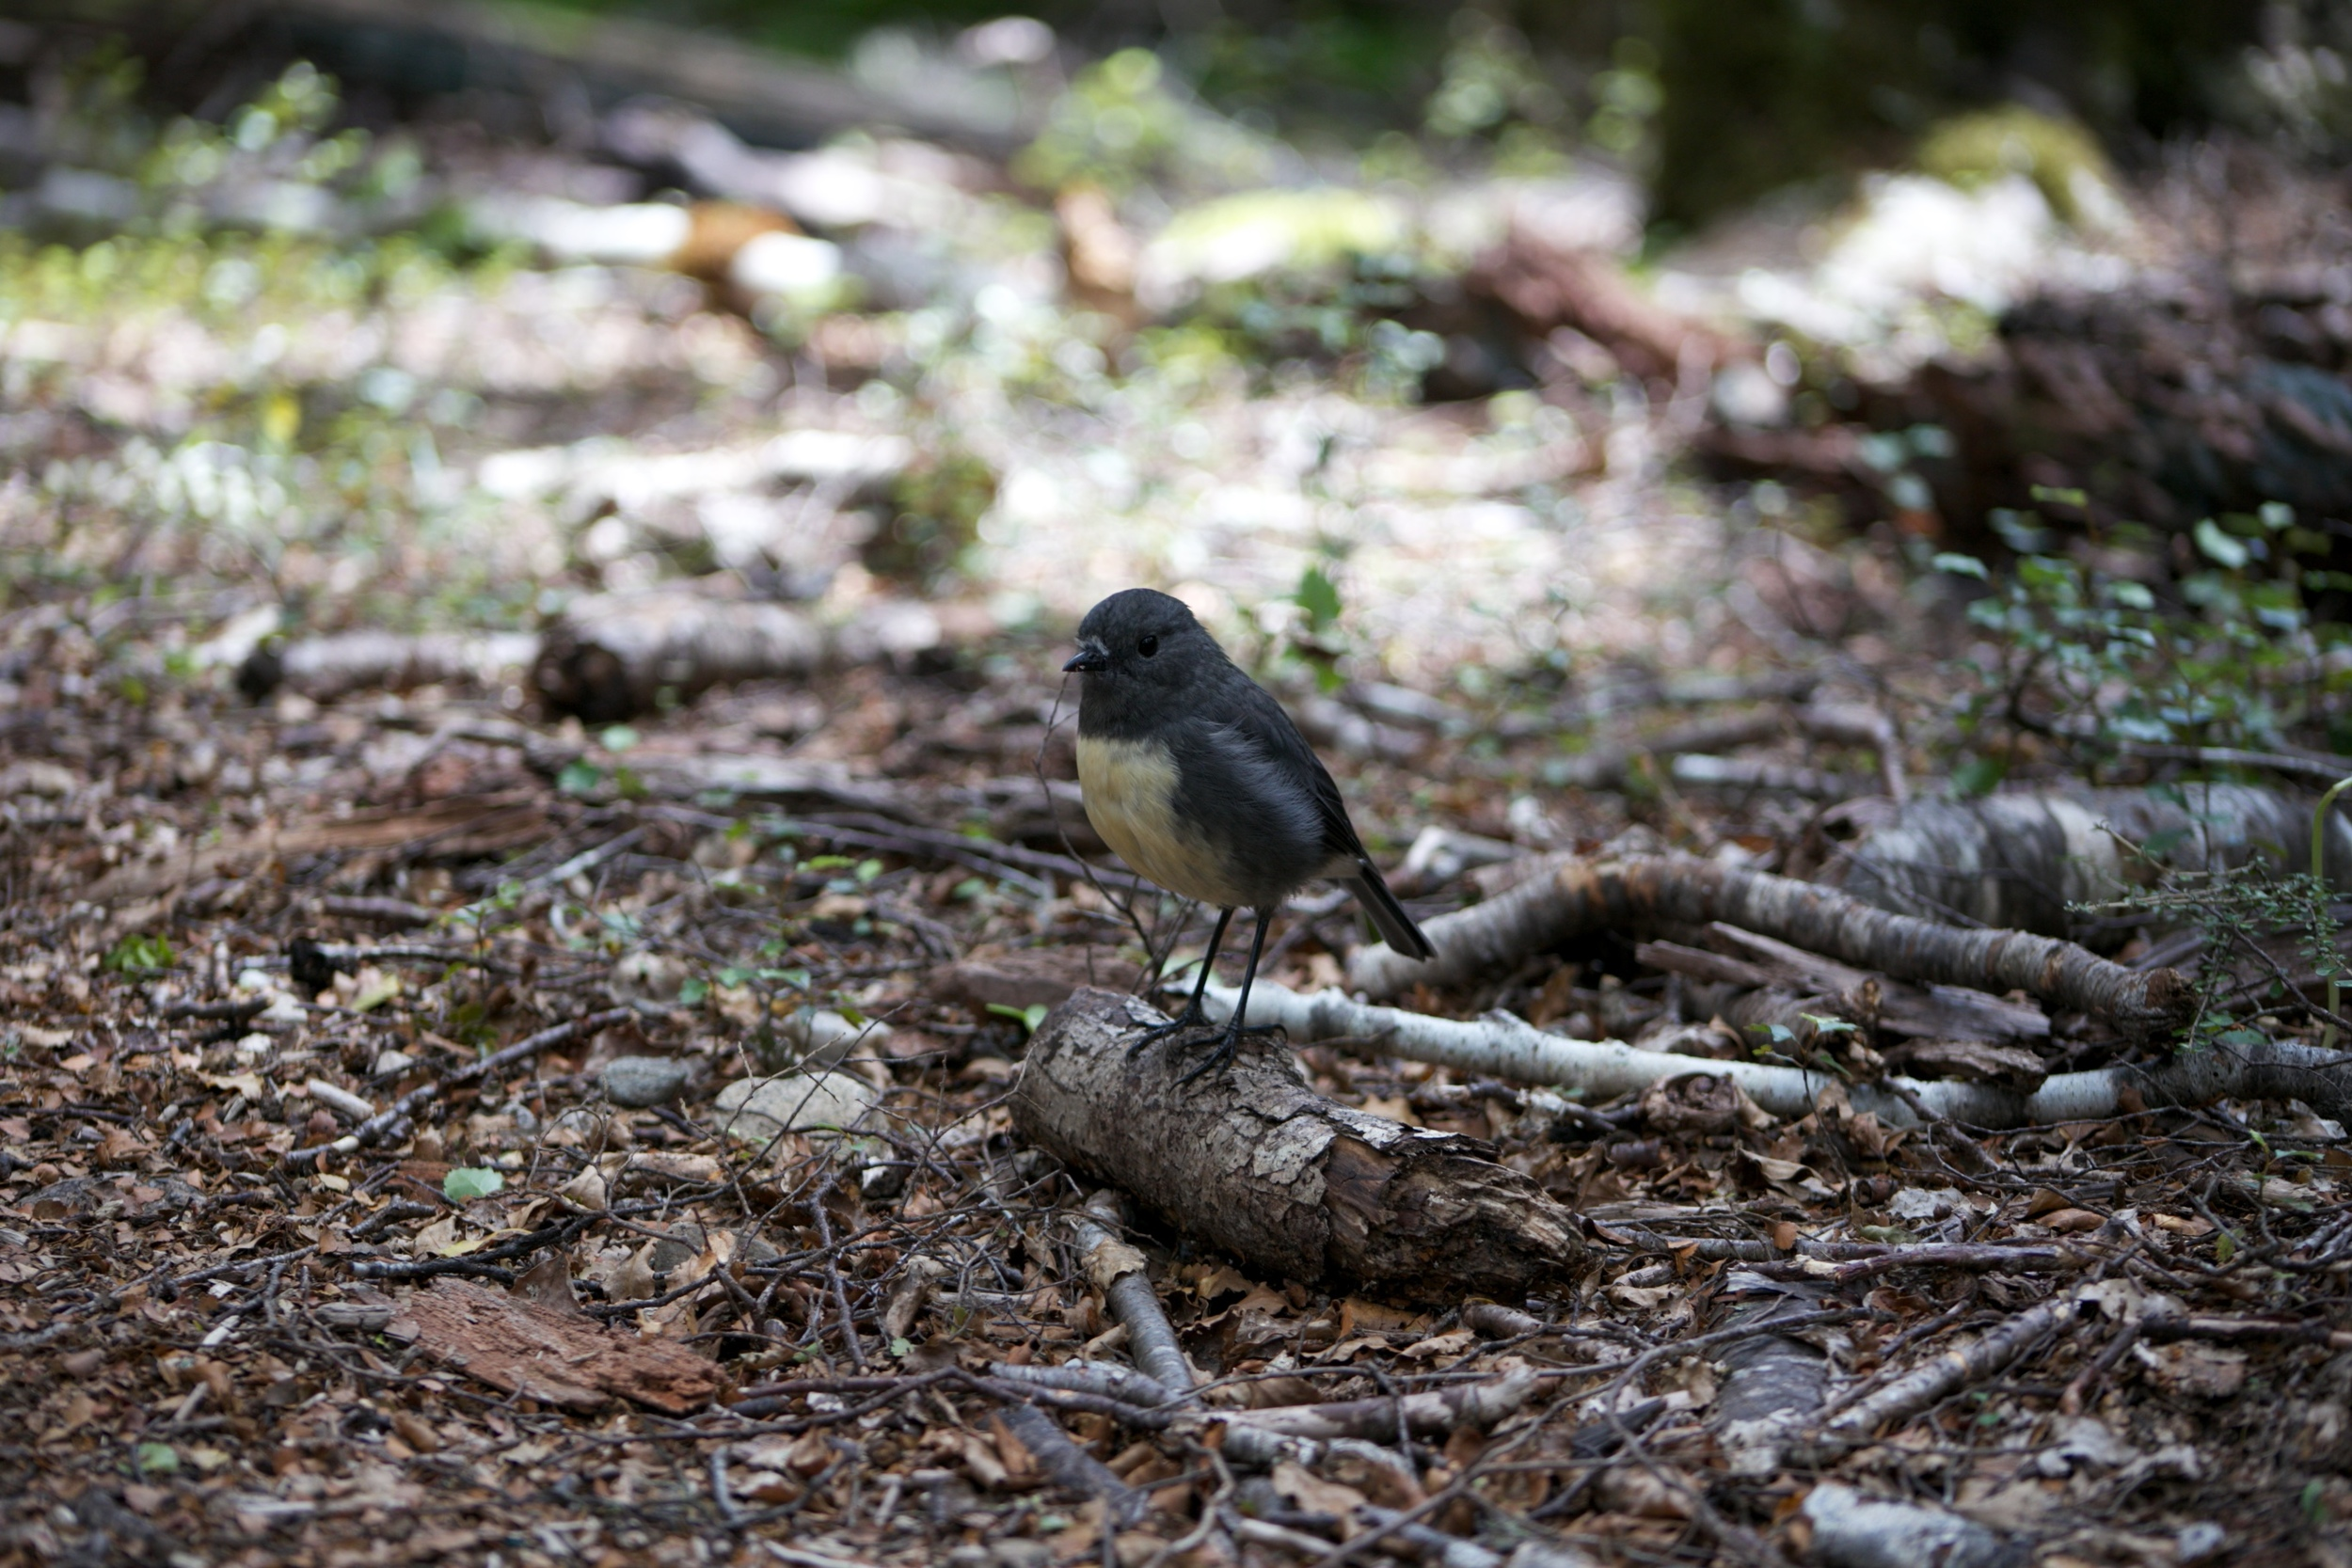 A friendly South Island Robin in the Canaan Downs reserve.